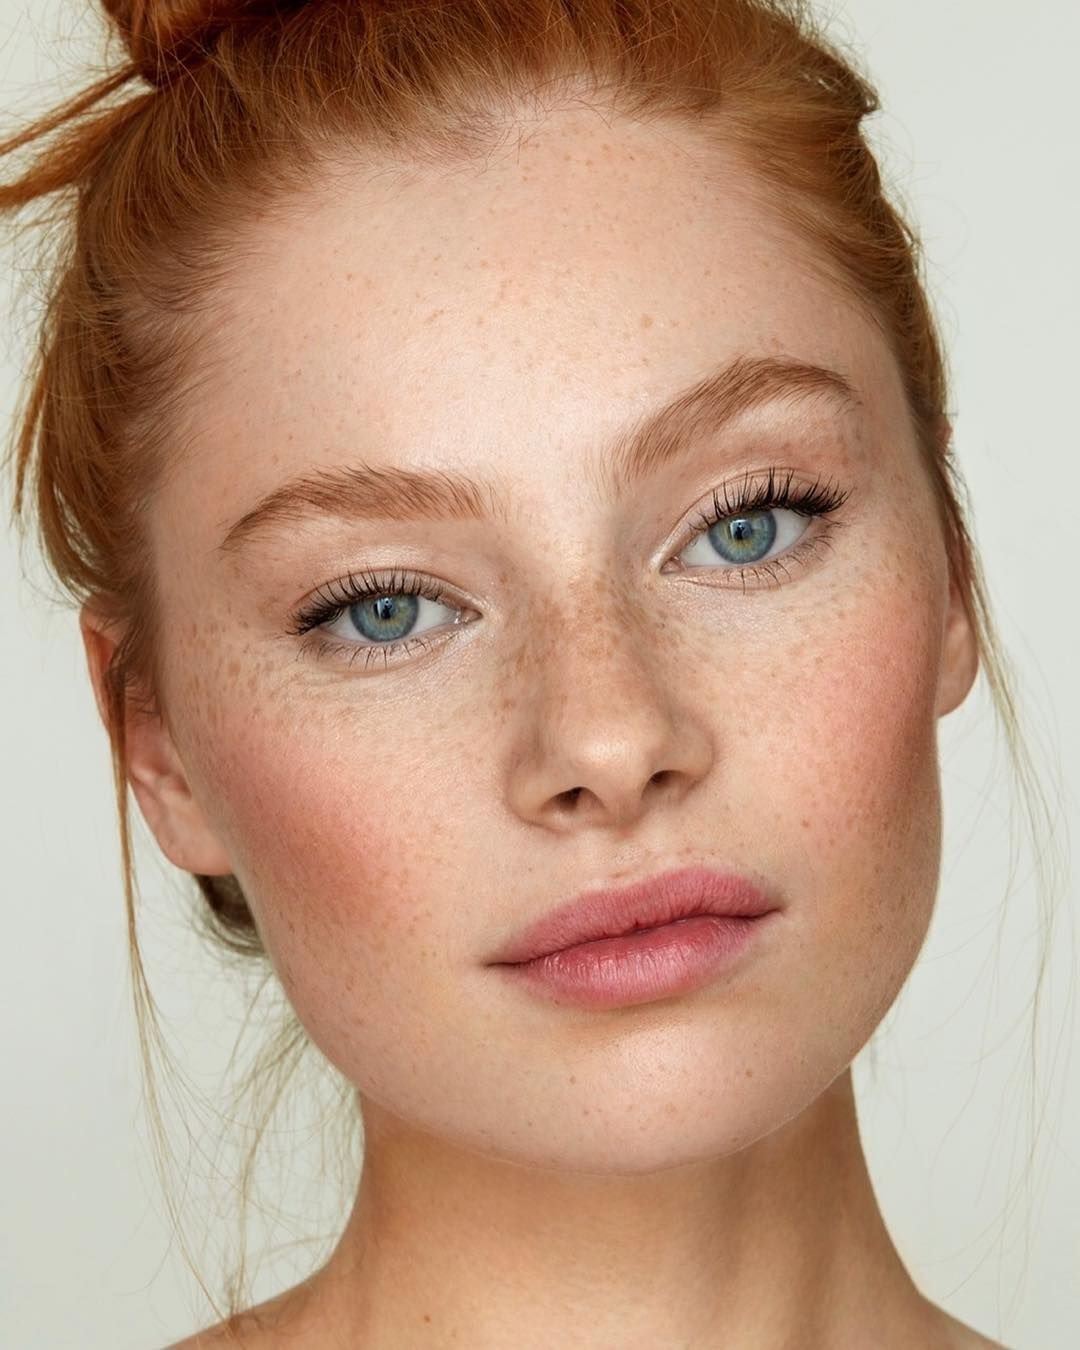 Pin by Harry on Red Hot in 2020 Redhead makeup, Natural